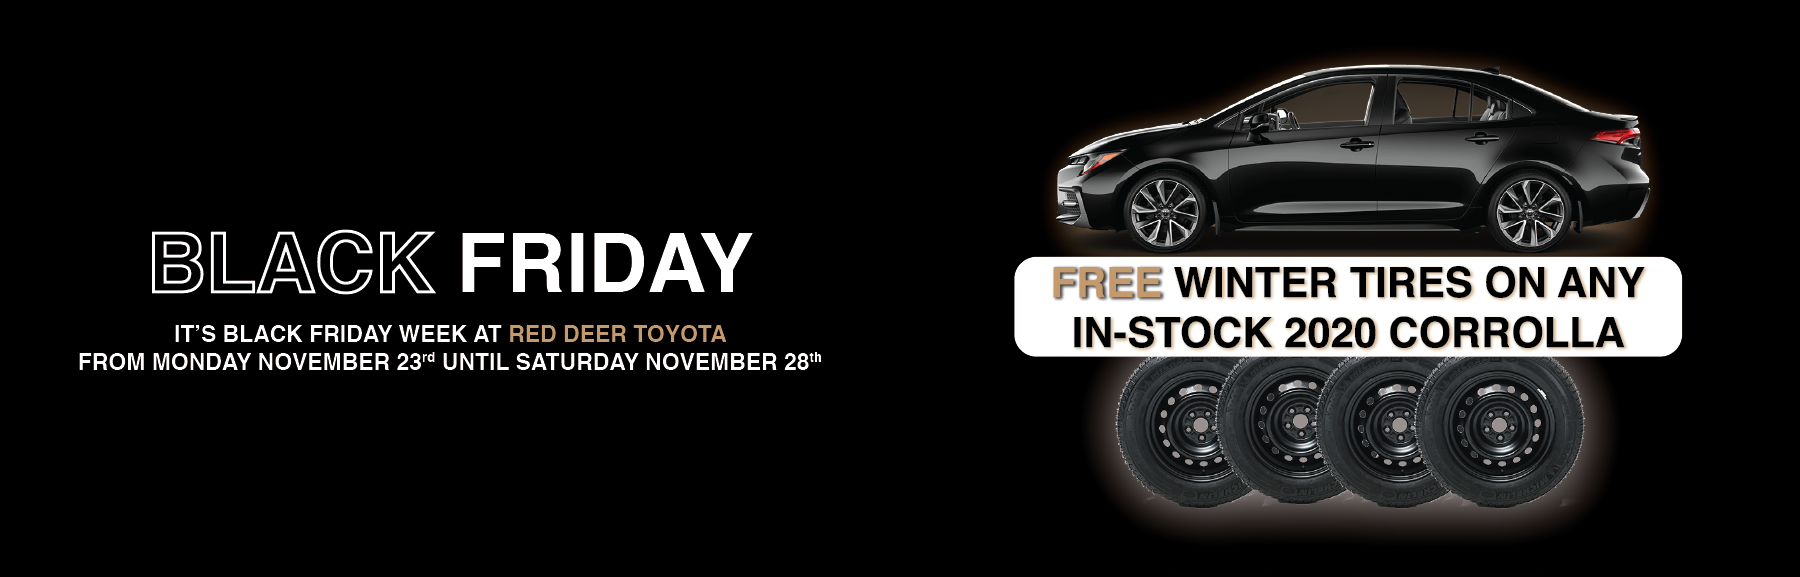 Black Friday Sale Free Winter Tires Corolla